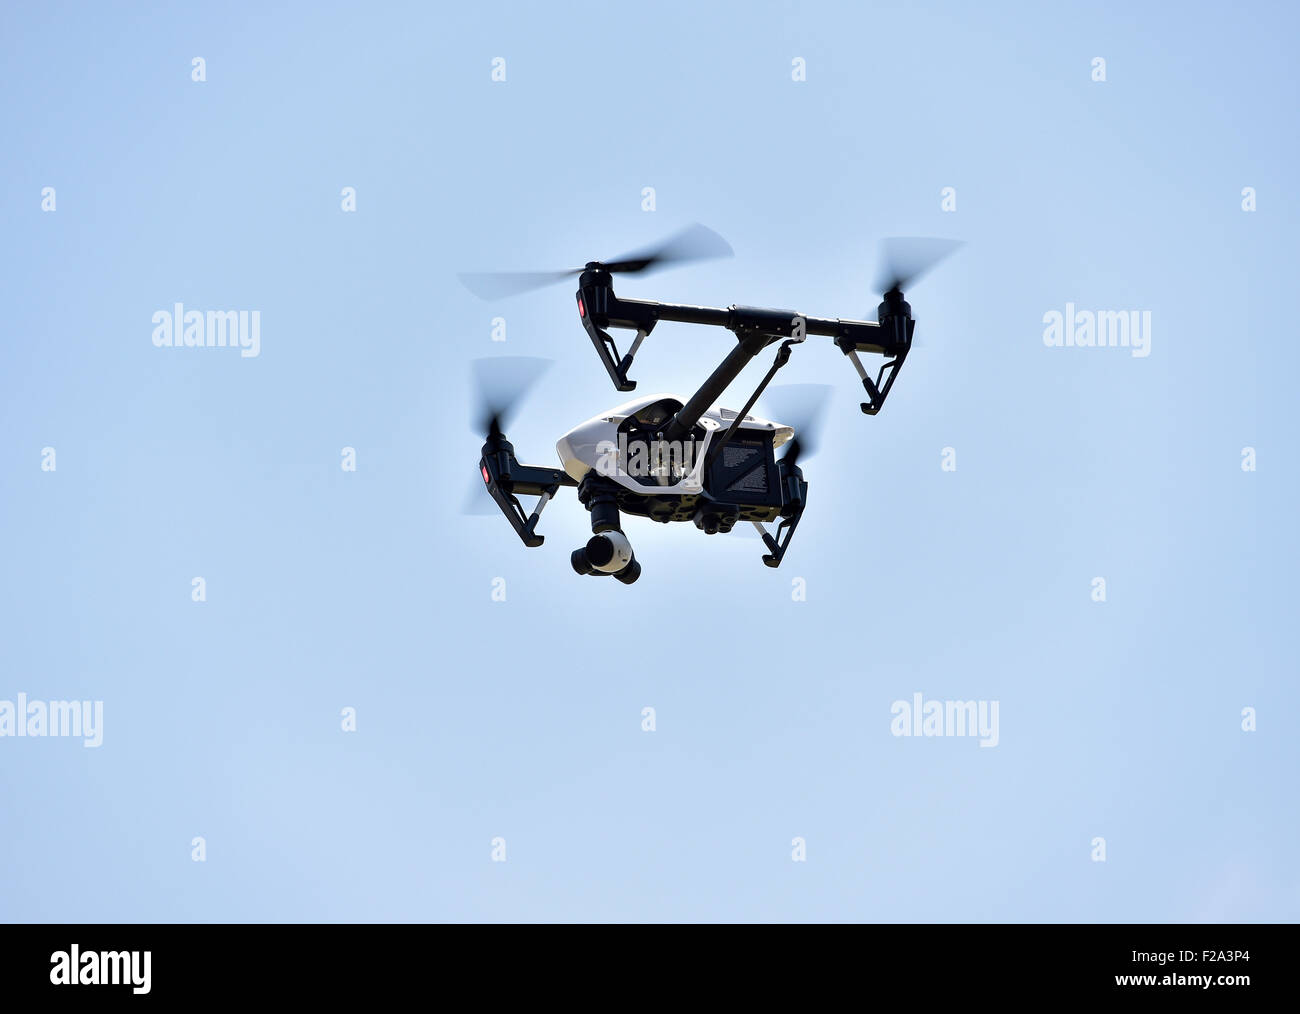 Drone in flight, carrying a film camera - Stock Image